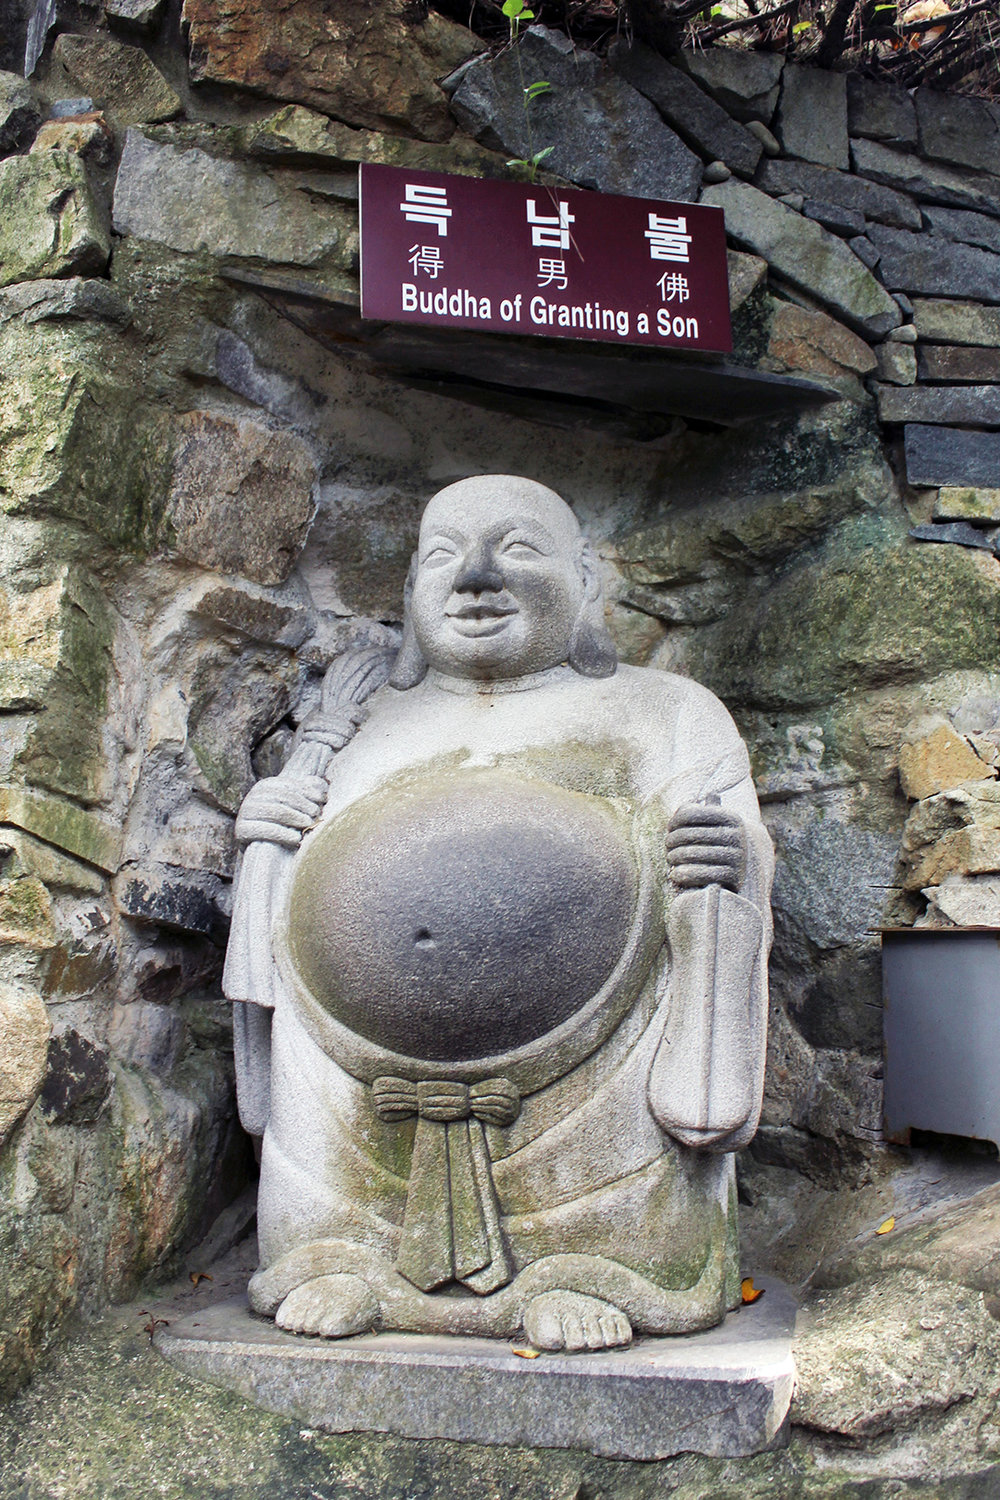 Rubbing this Buddha's belly while praying is said to grant sons to expectant mothers.